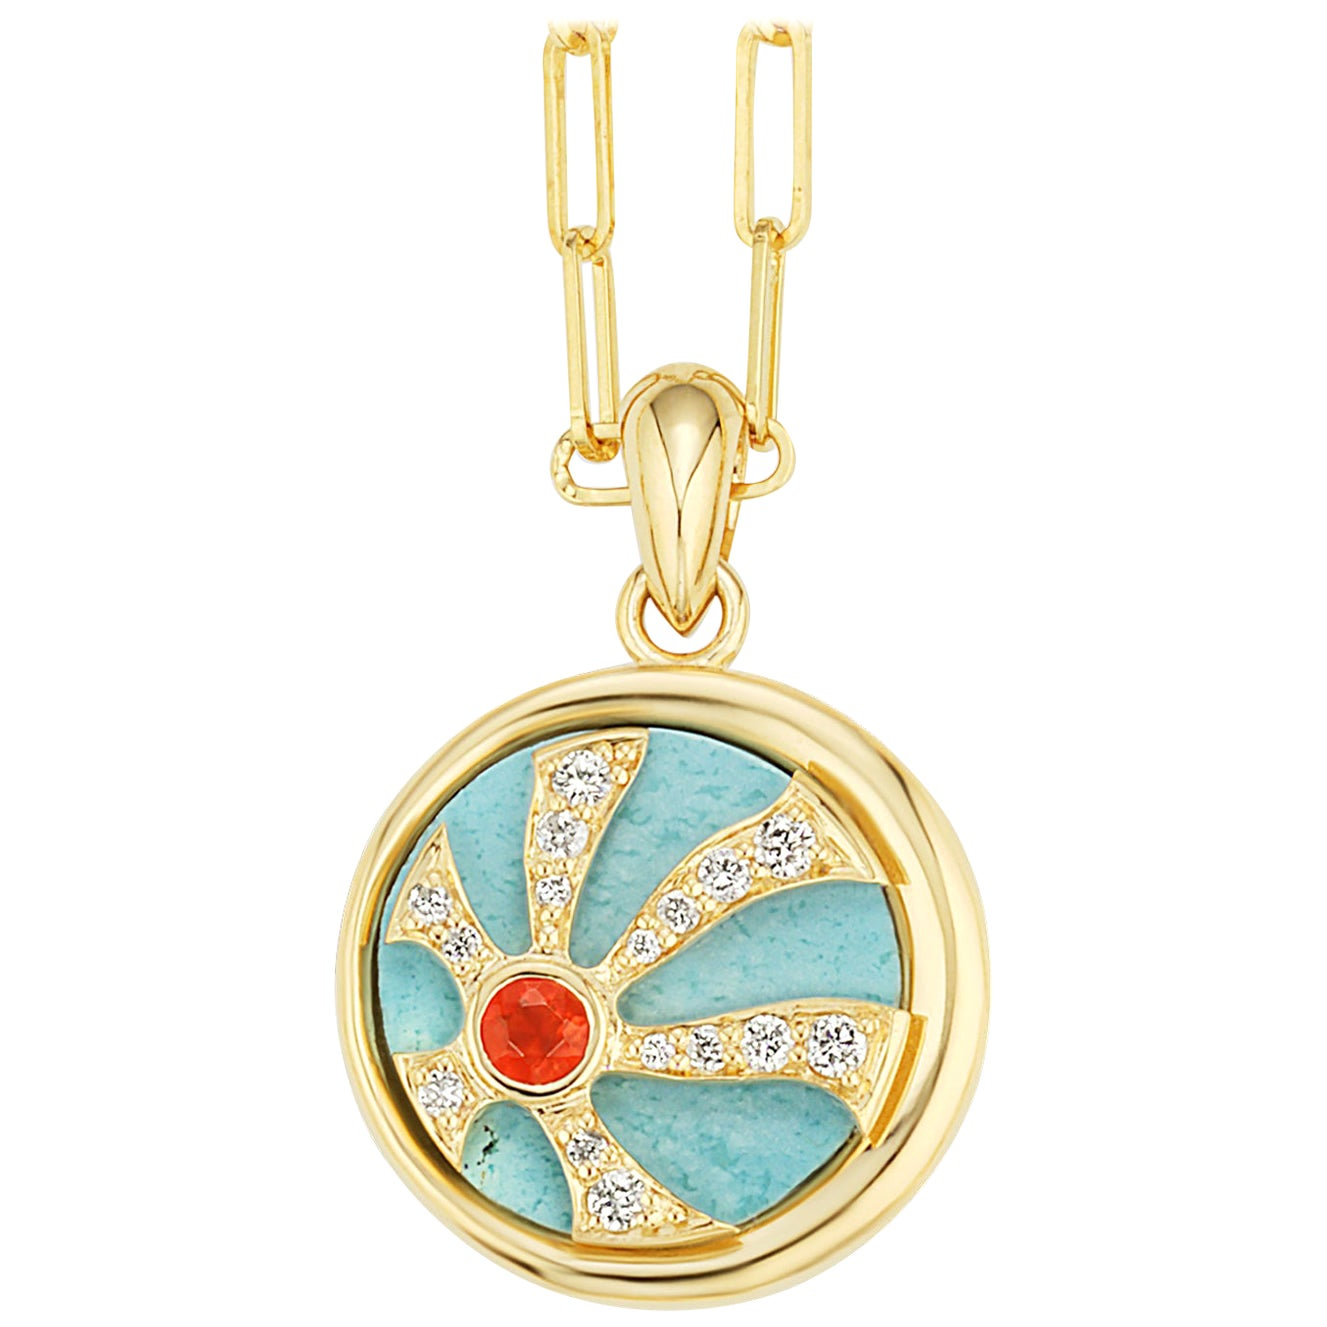 AnaKatarina Elements 'Fire' Pendant in 18K Gold, Fire Opal, Turquoise, Diamonds